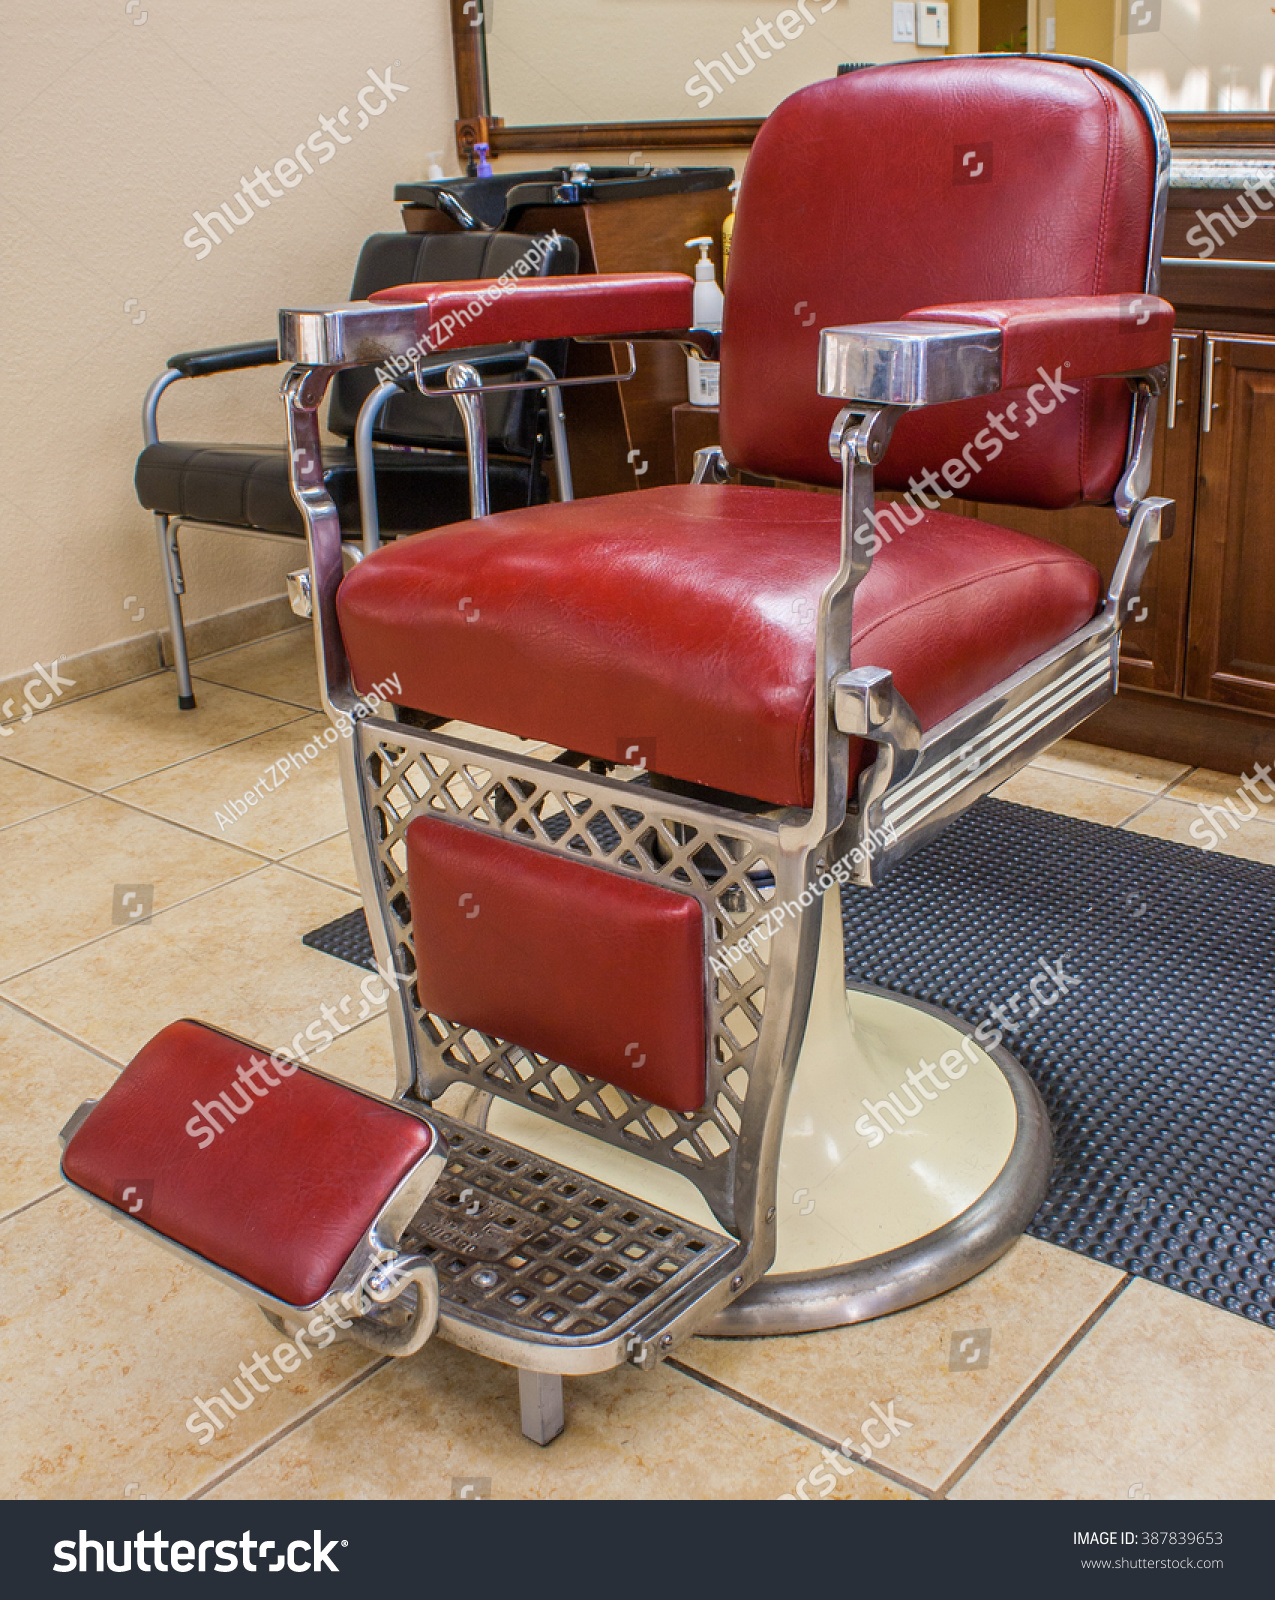 Classic barber shop chairs - Classic Barber Chair In A Barbershop Setting Stock